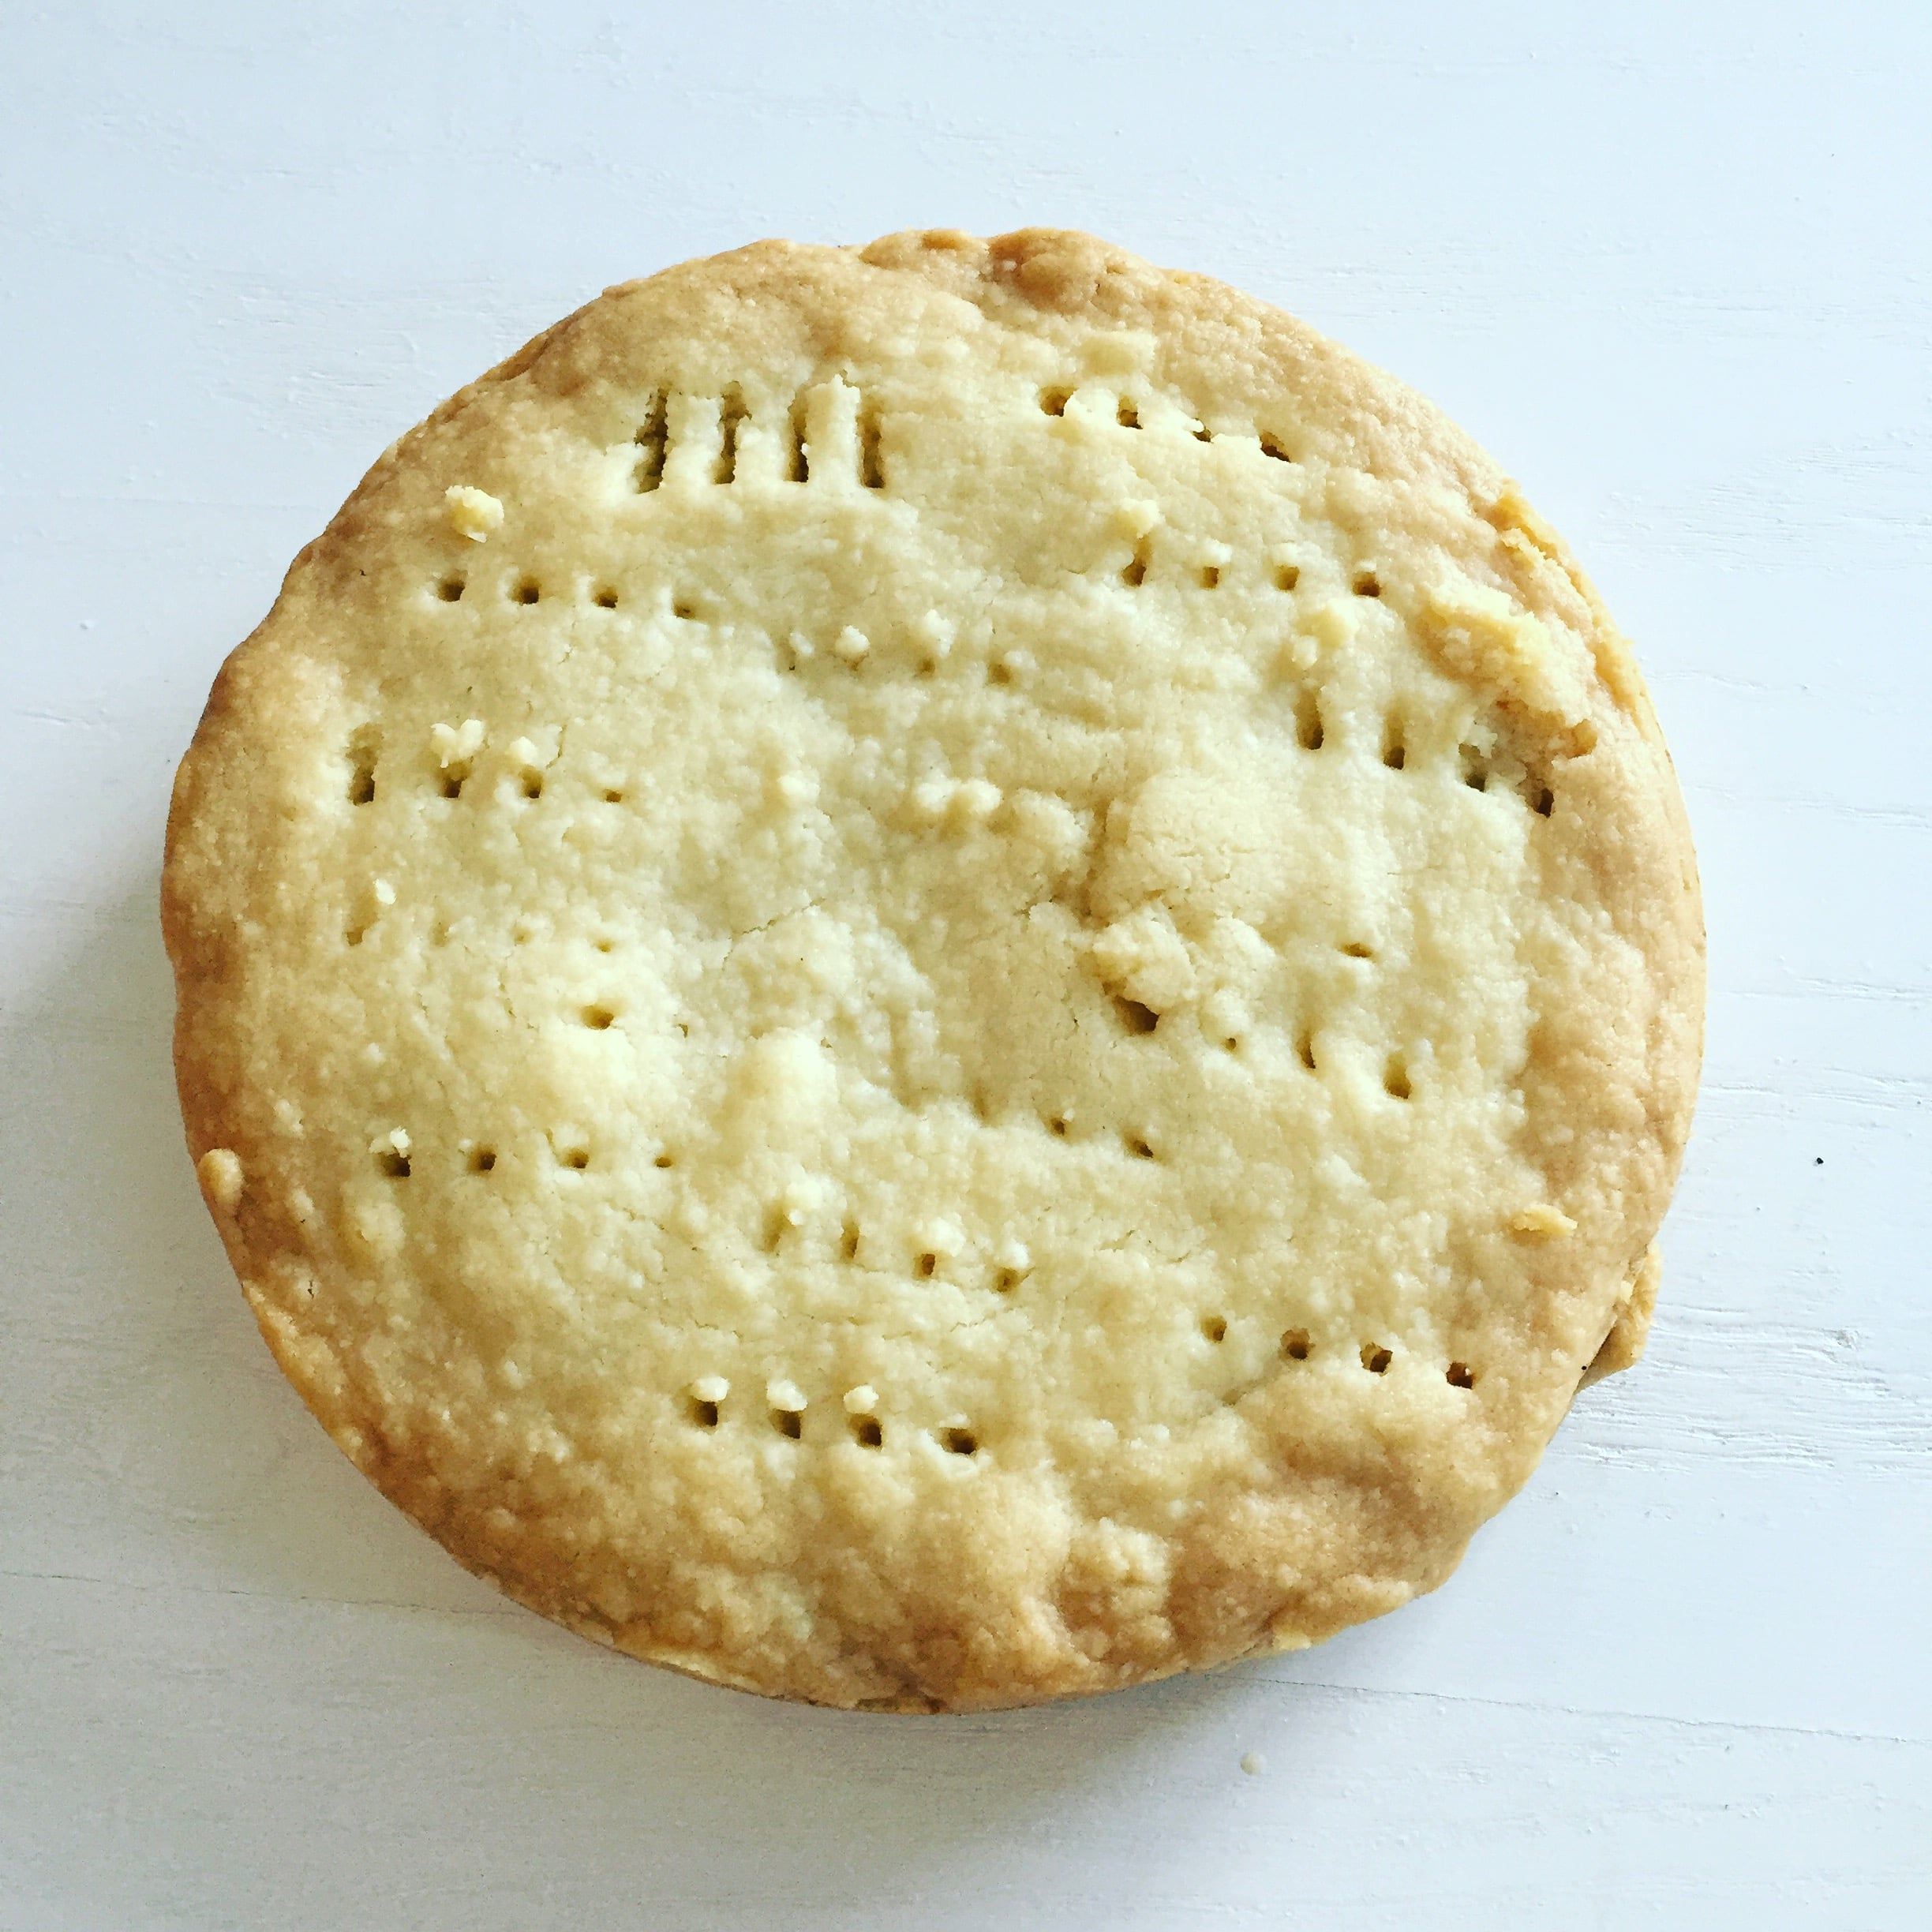 The finished traditional shortbread.